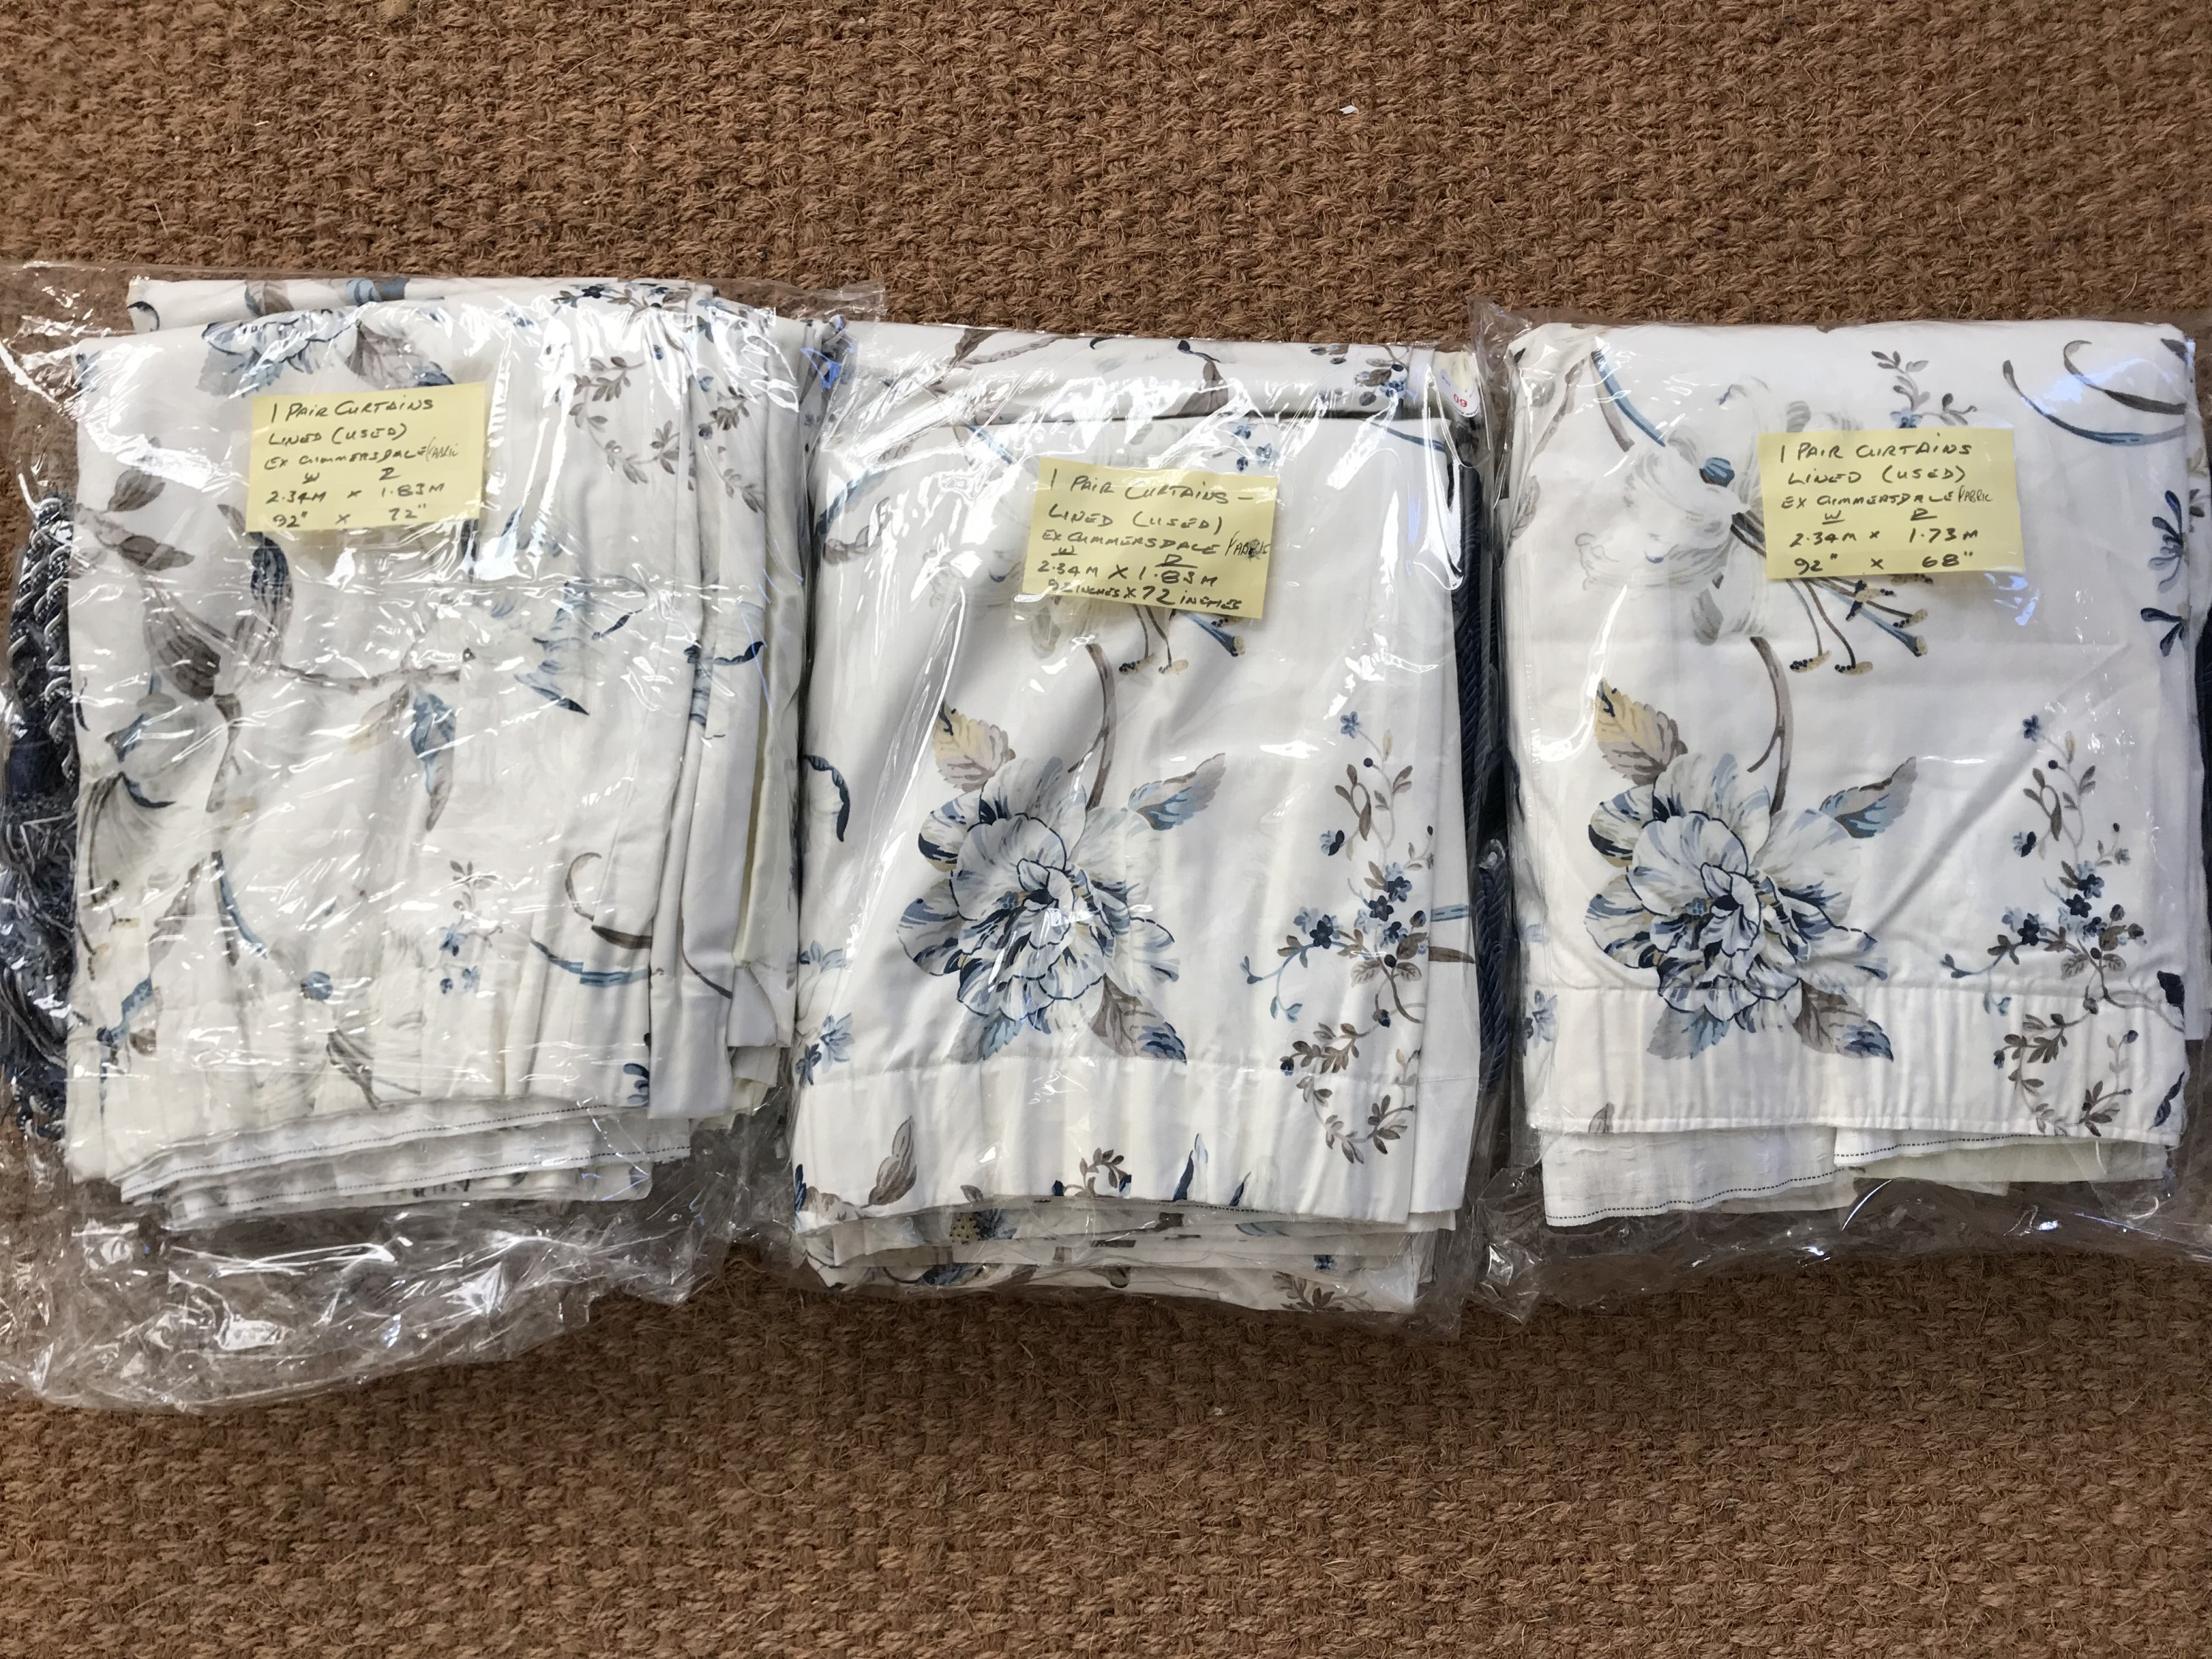 Lot 60 - Three pairs of curtains in Stead McAlpine printed fabric, two x 2.30 m wide x 1.8 m long, one x 2.